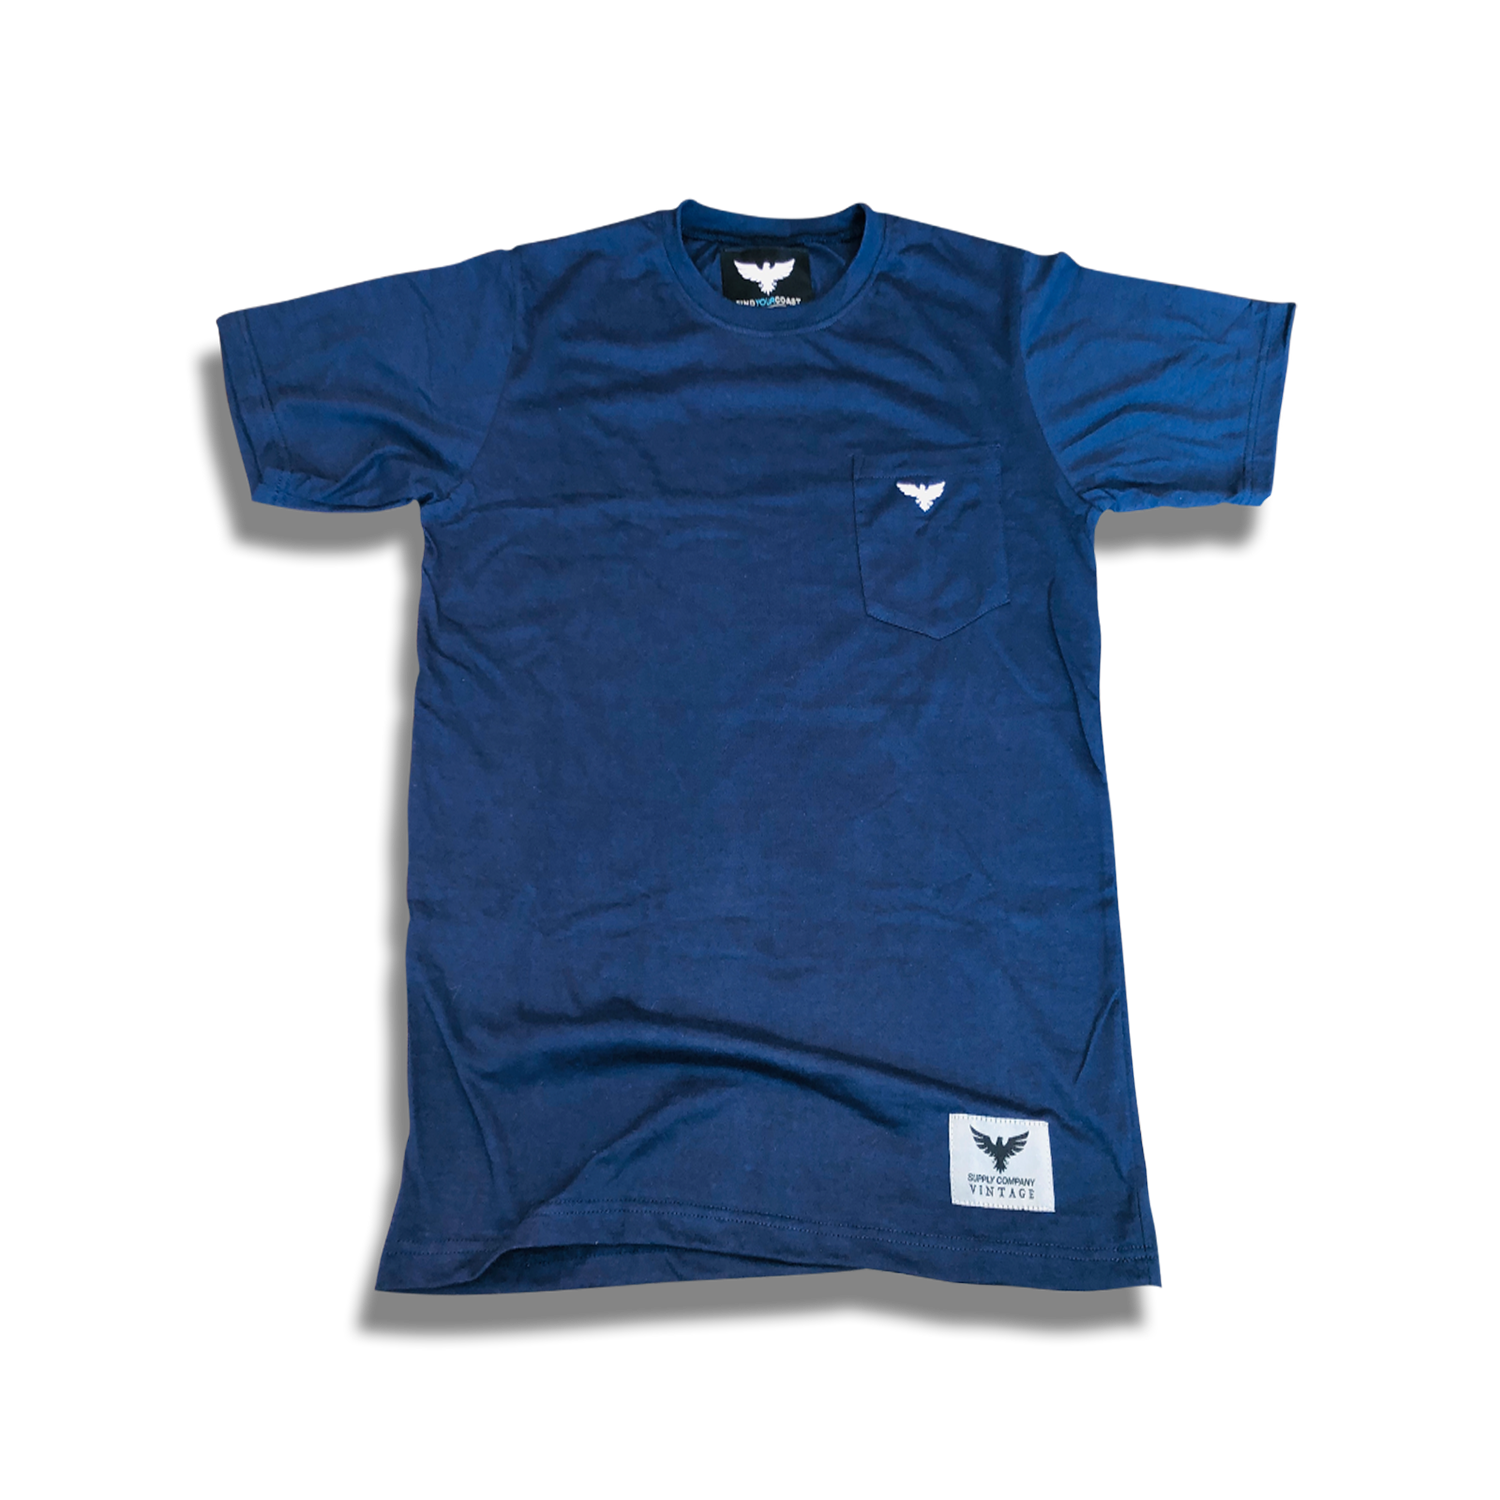 Men's FYC Vintage Venturer Premium Comfort Embroidered Navy Pocket Tees